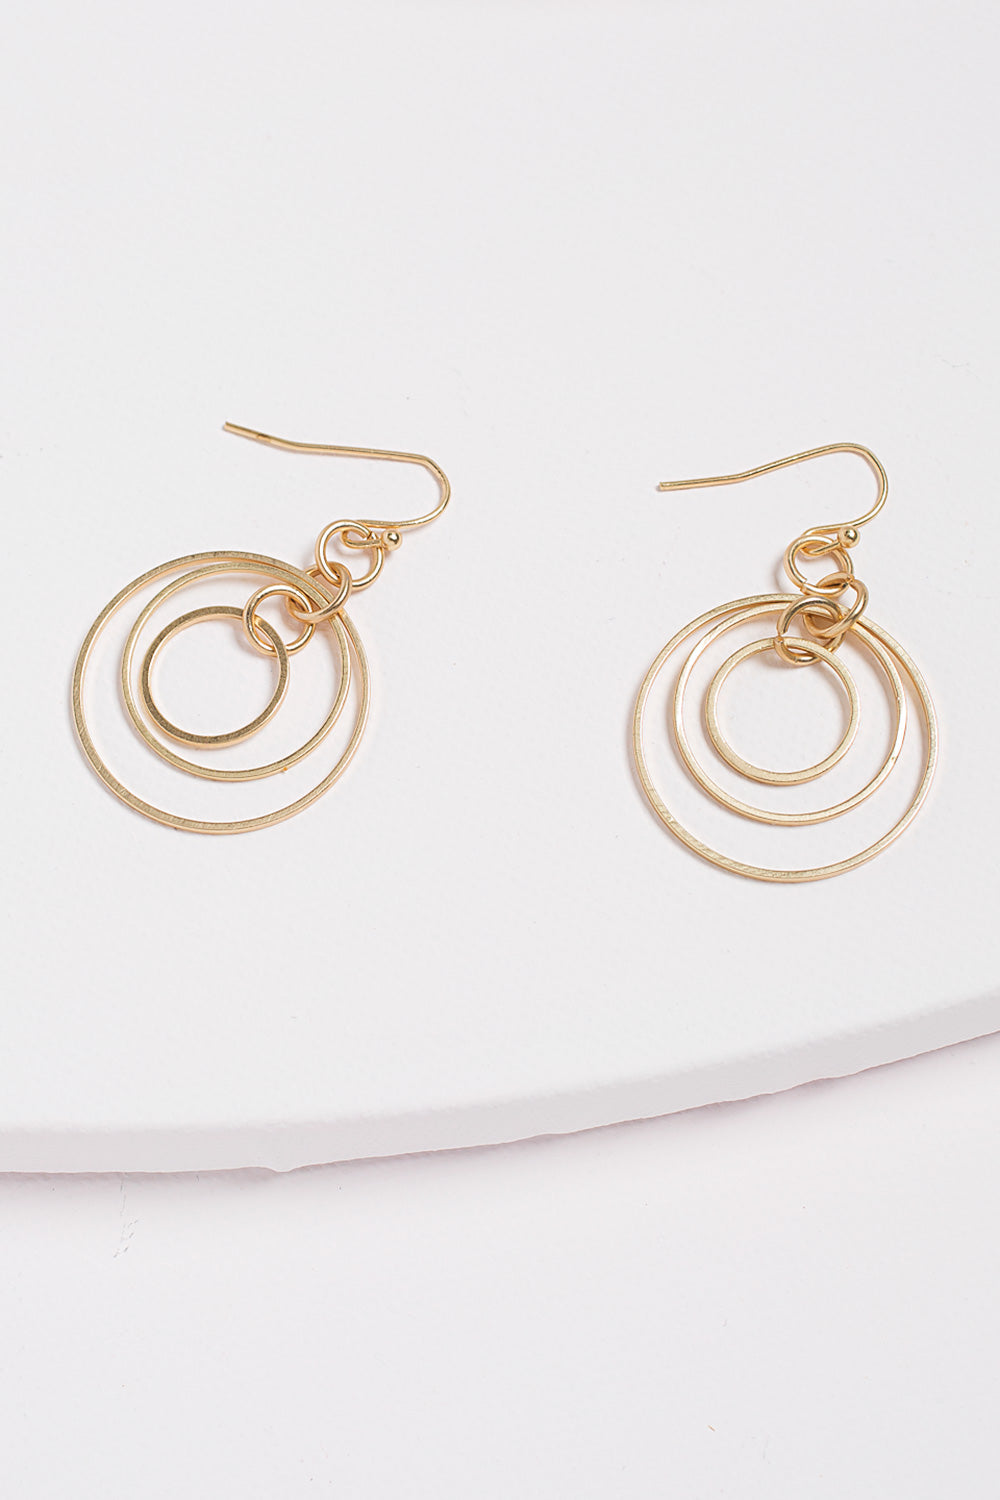 Type 1 Singing Cymbals Earrings